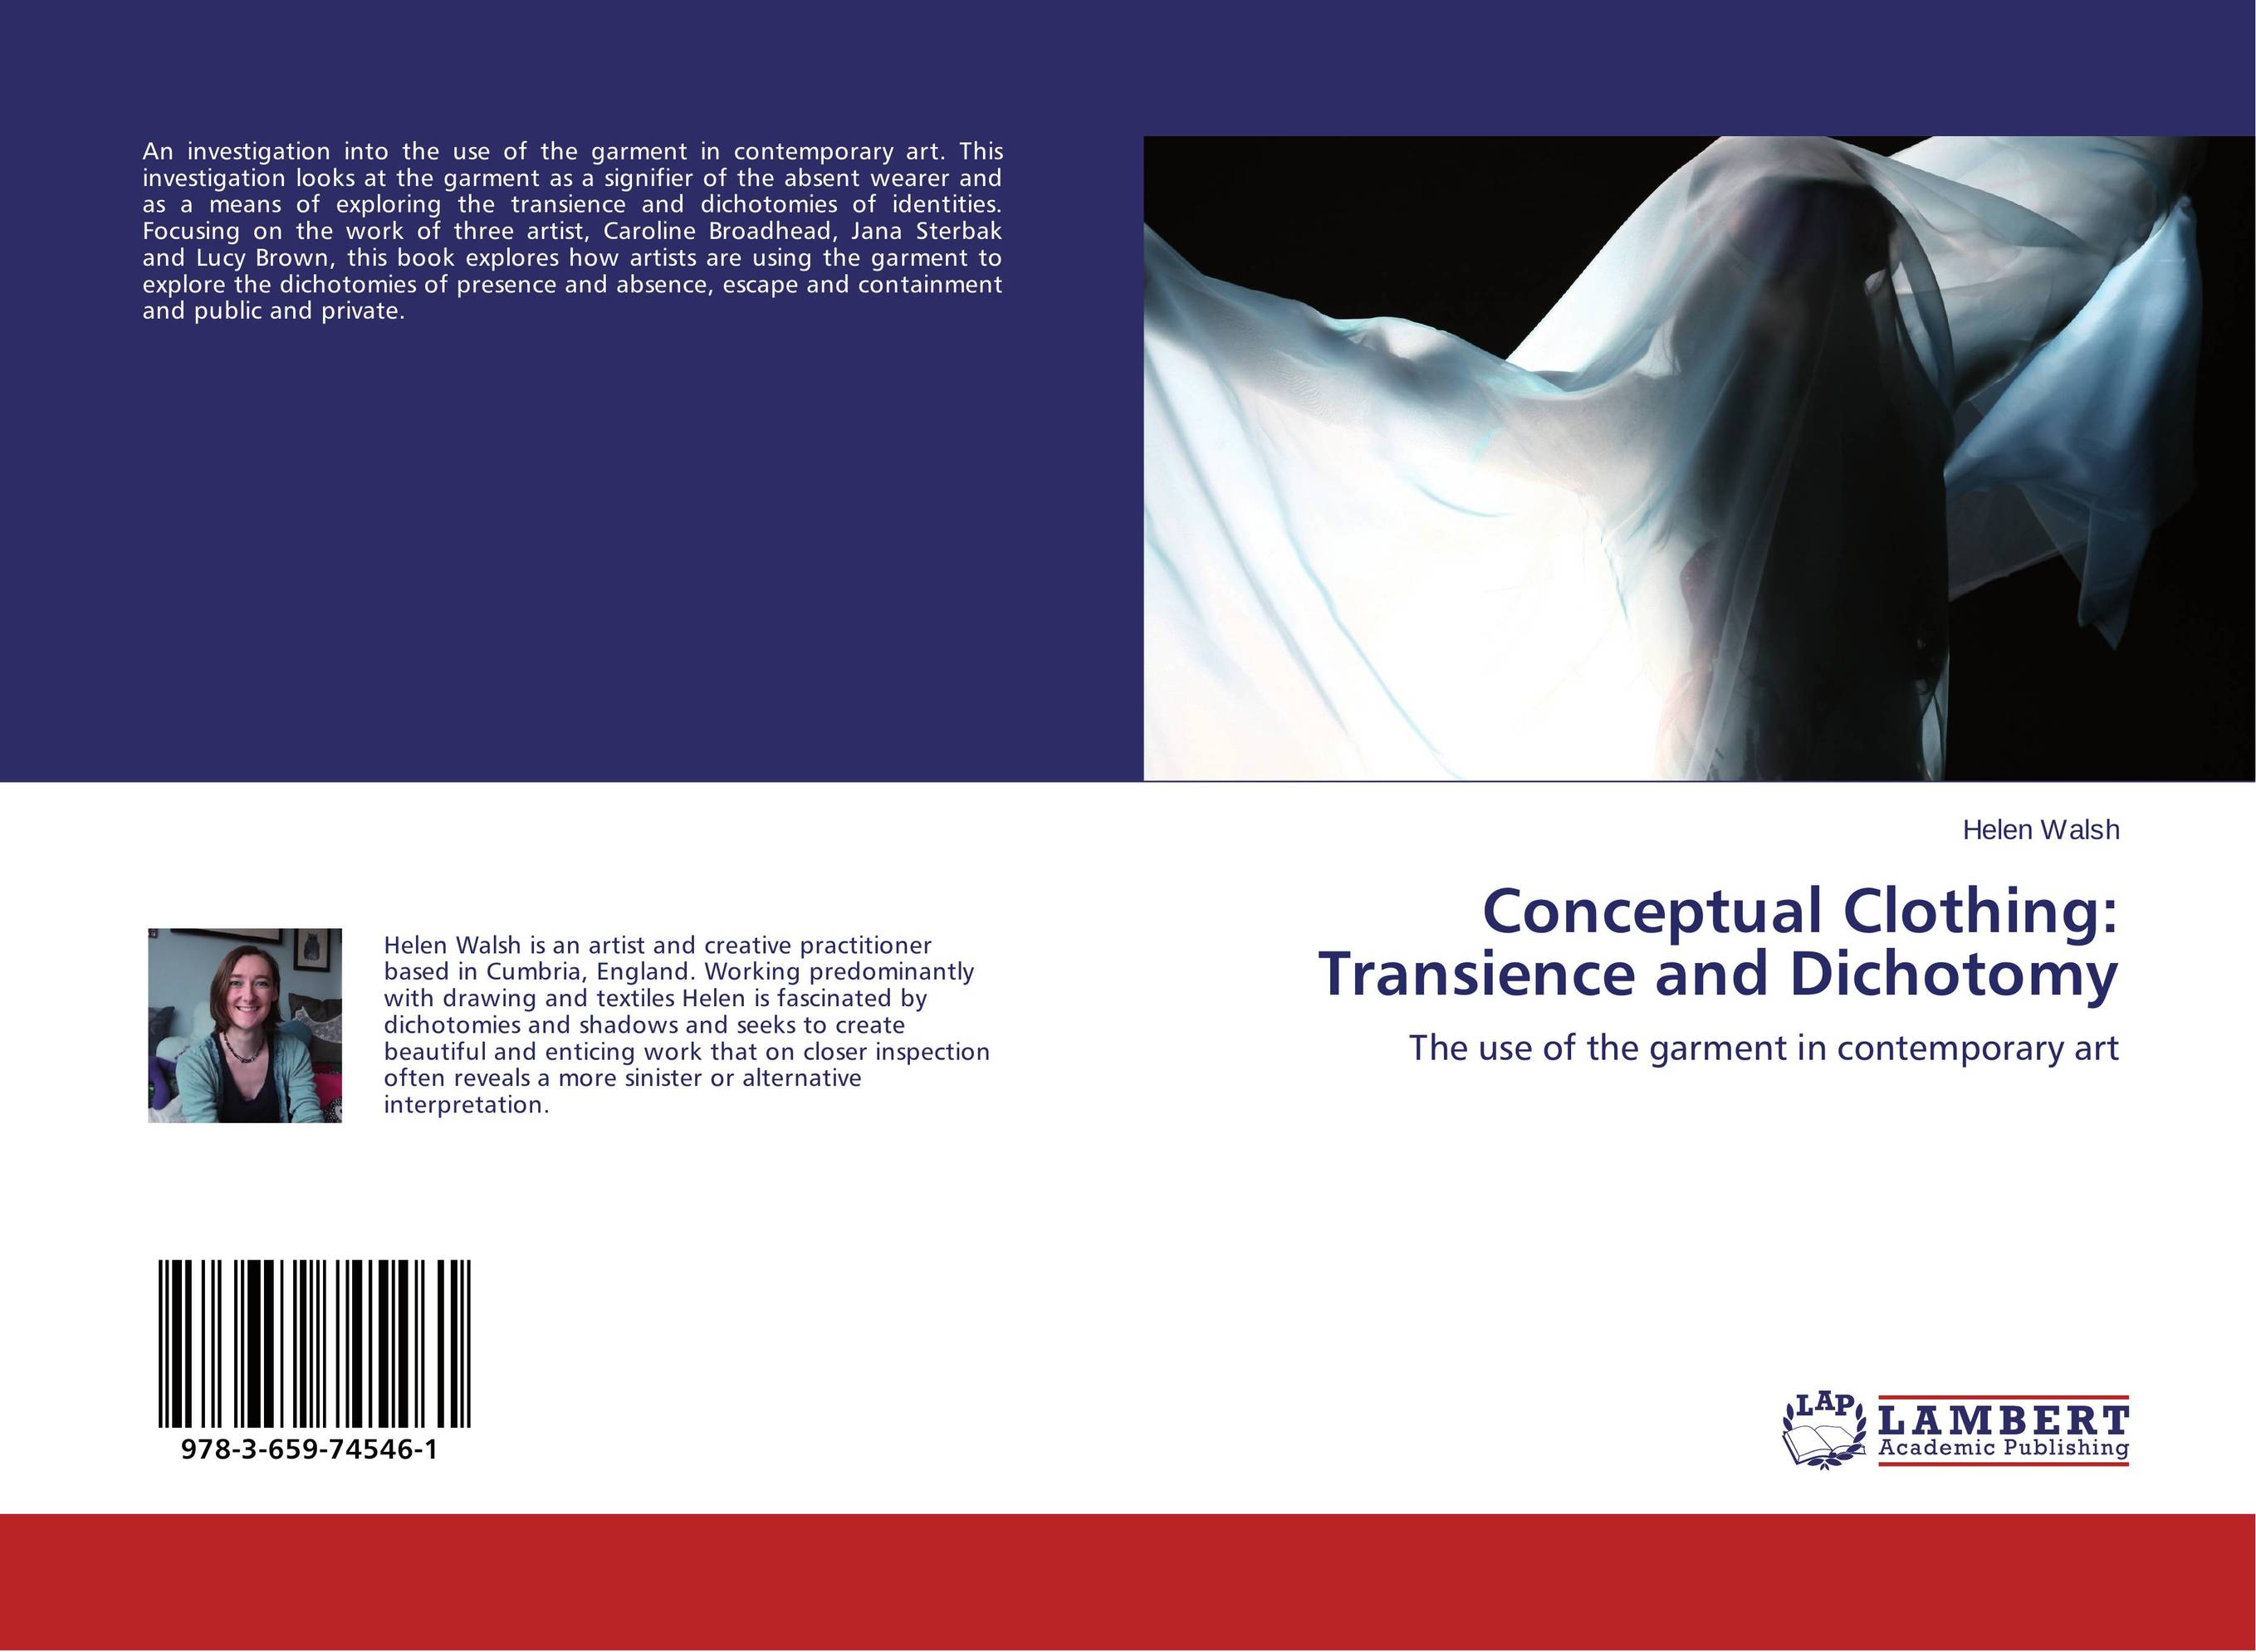 Conceptual Clothing: Transience and Dichotomy phytochemical investigation of the flavonoids